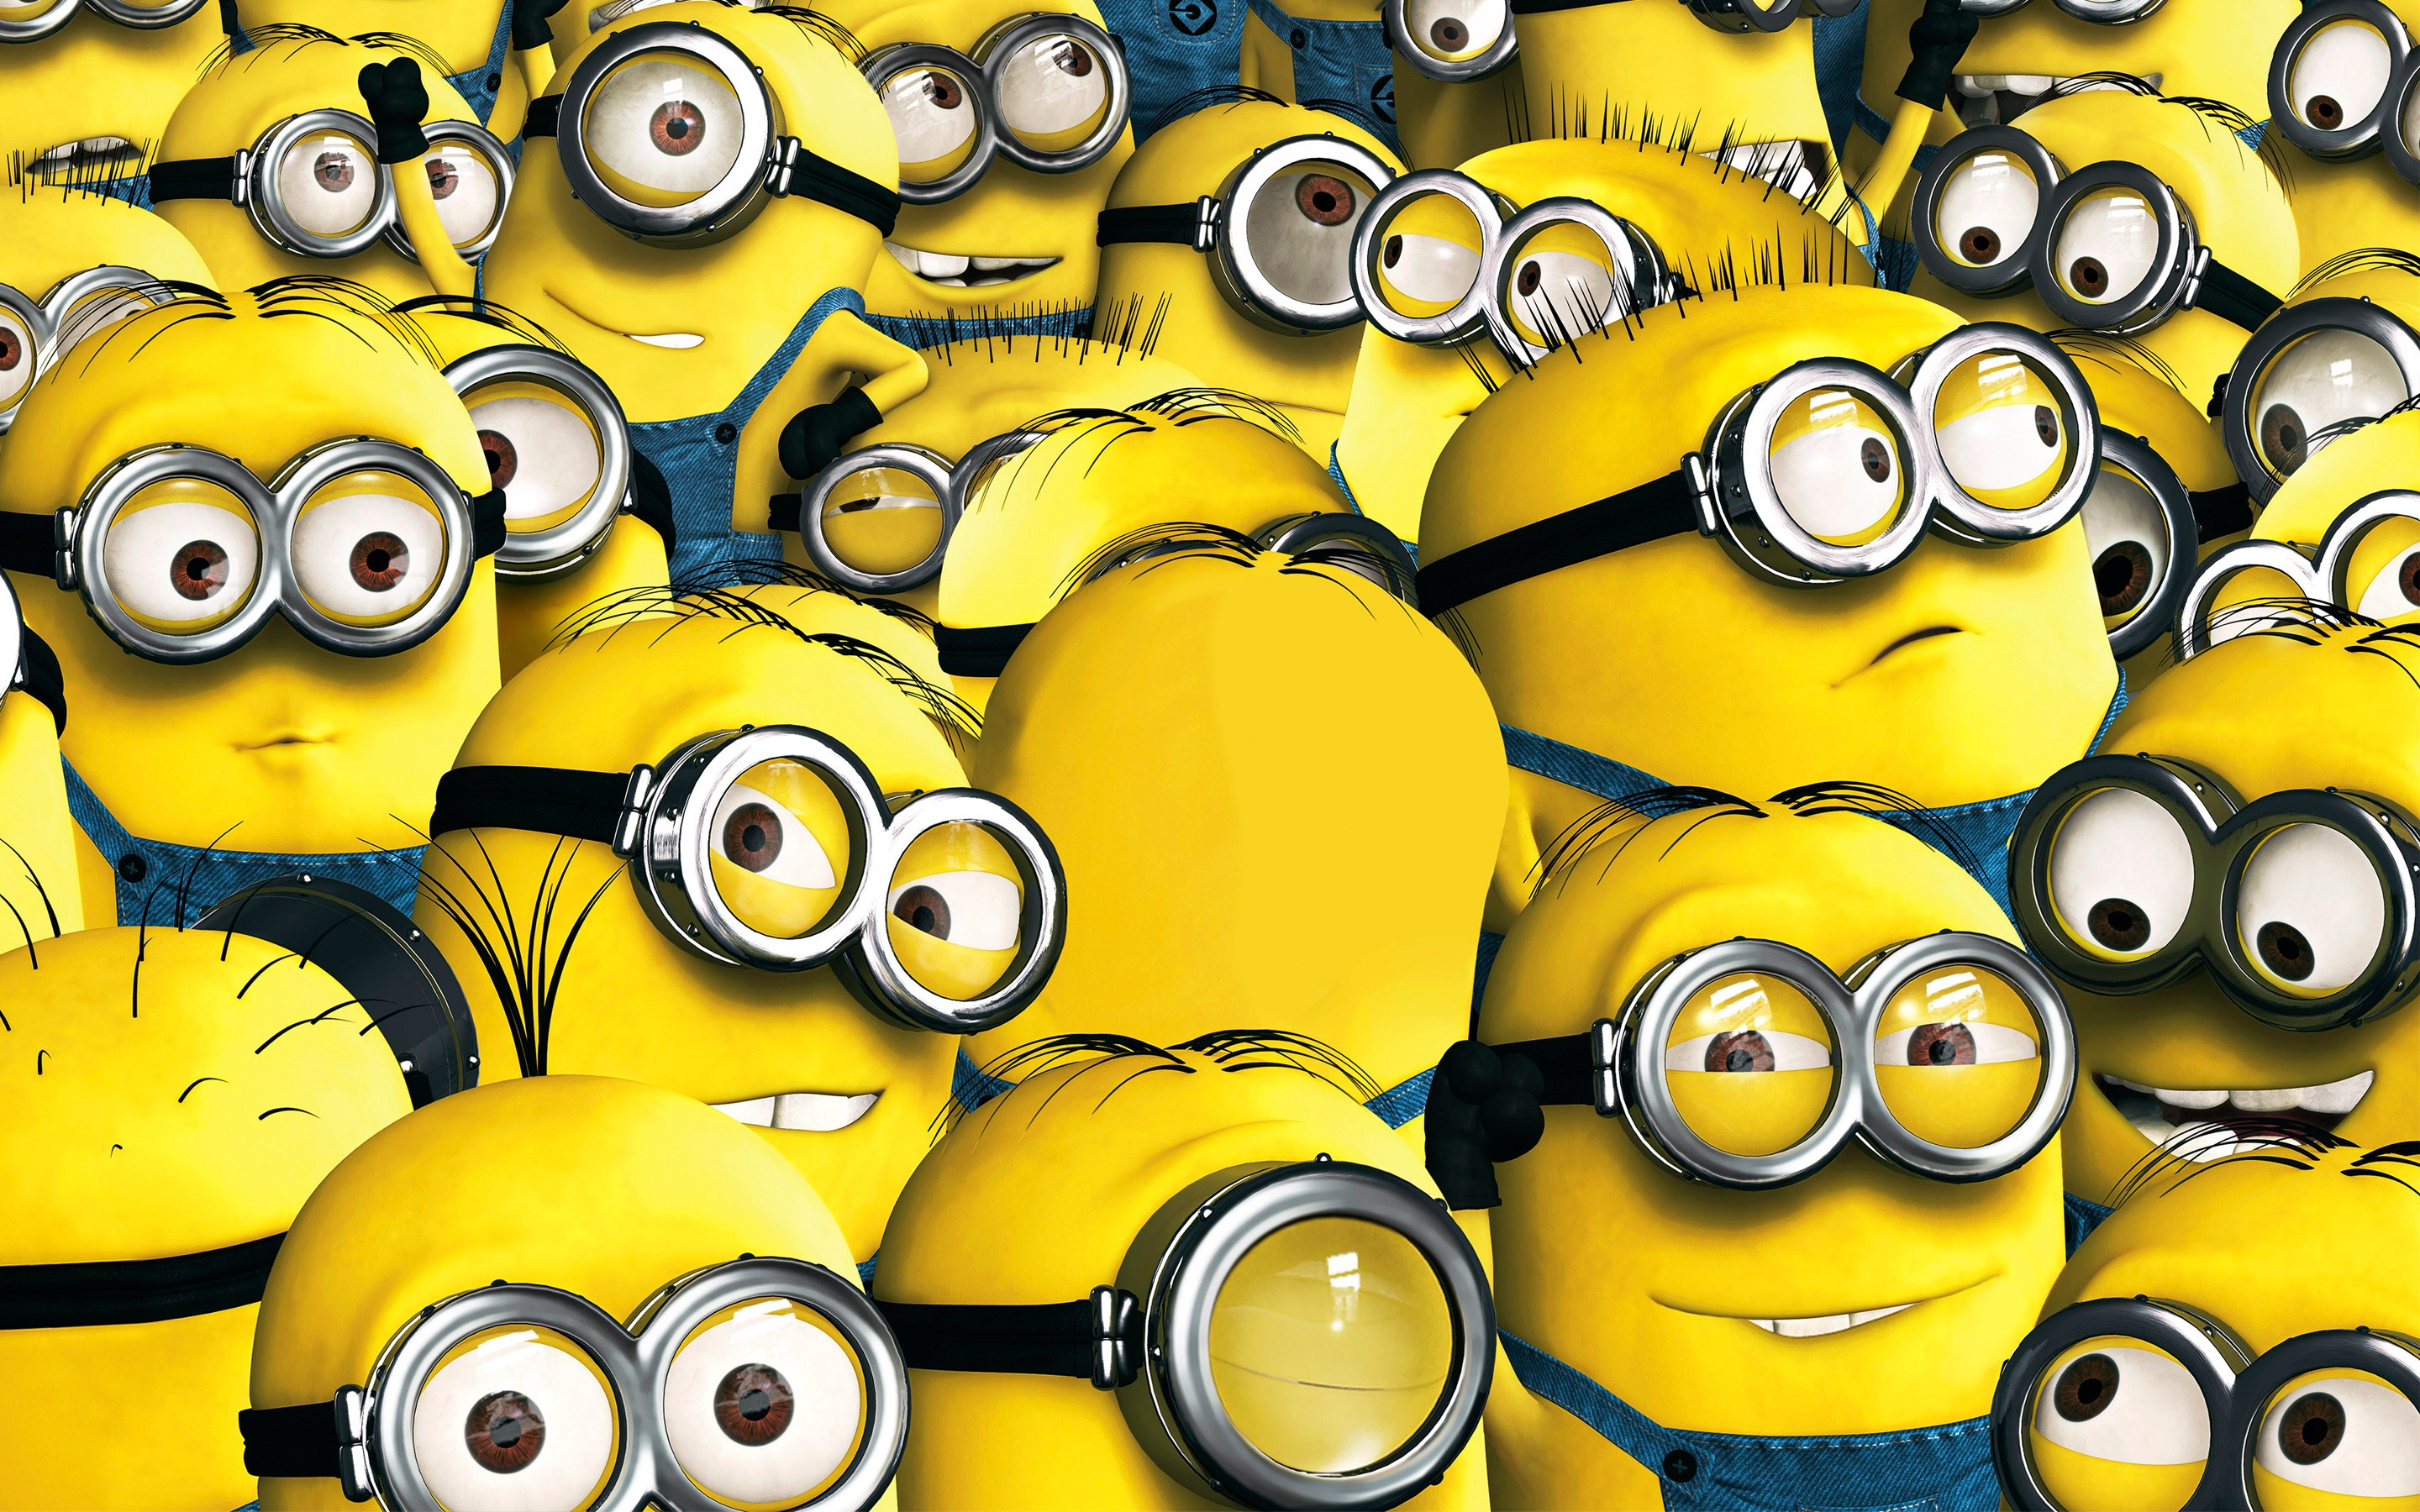 2560x1440 despicable me minions 1440p resolution hd 4k wallpapers despicable me minions 1440p resolution voltagebd Image collections